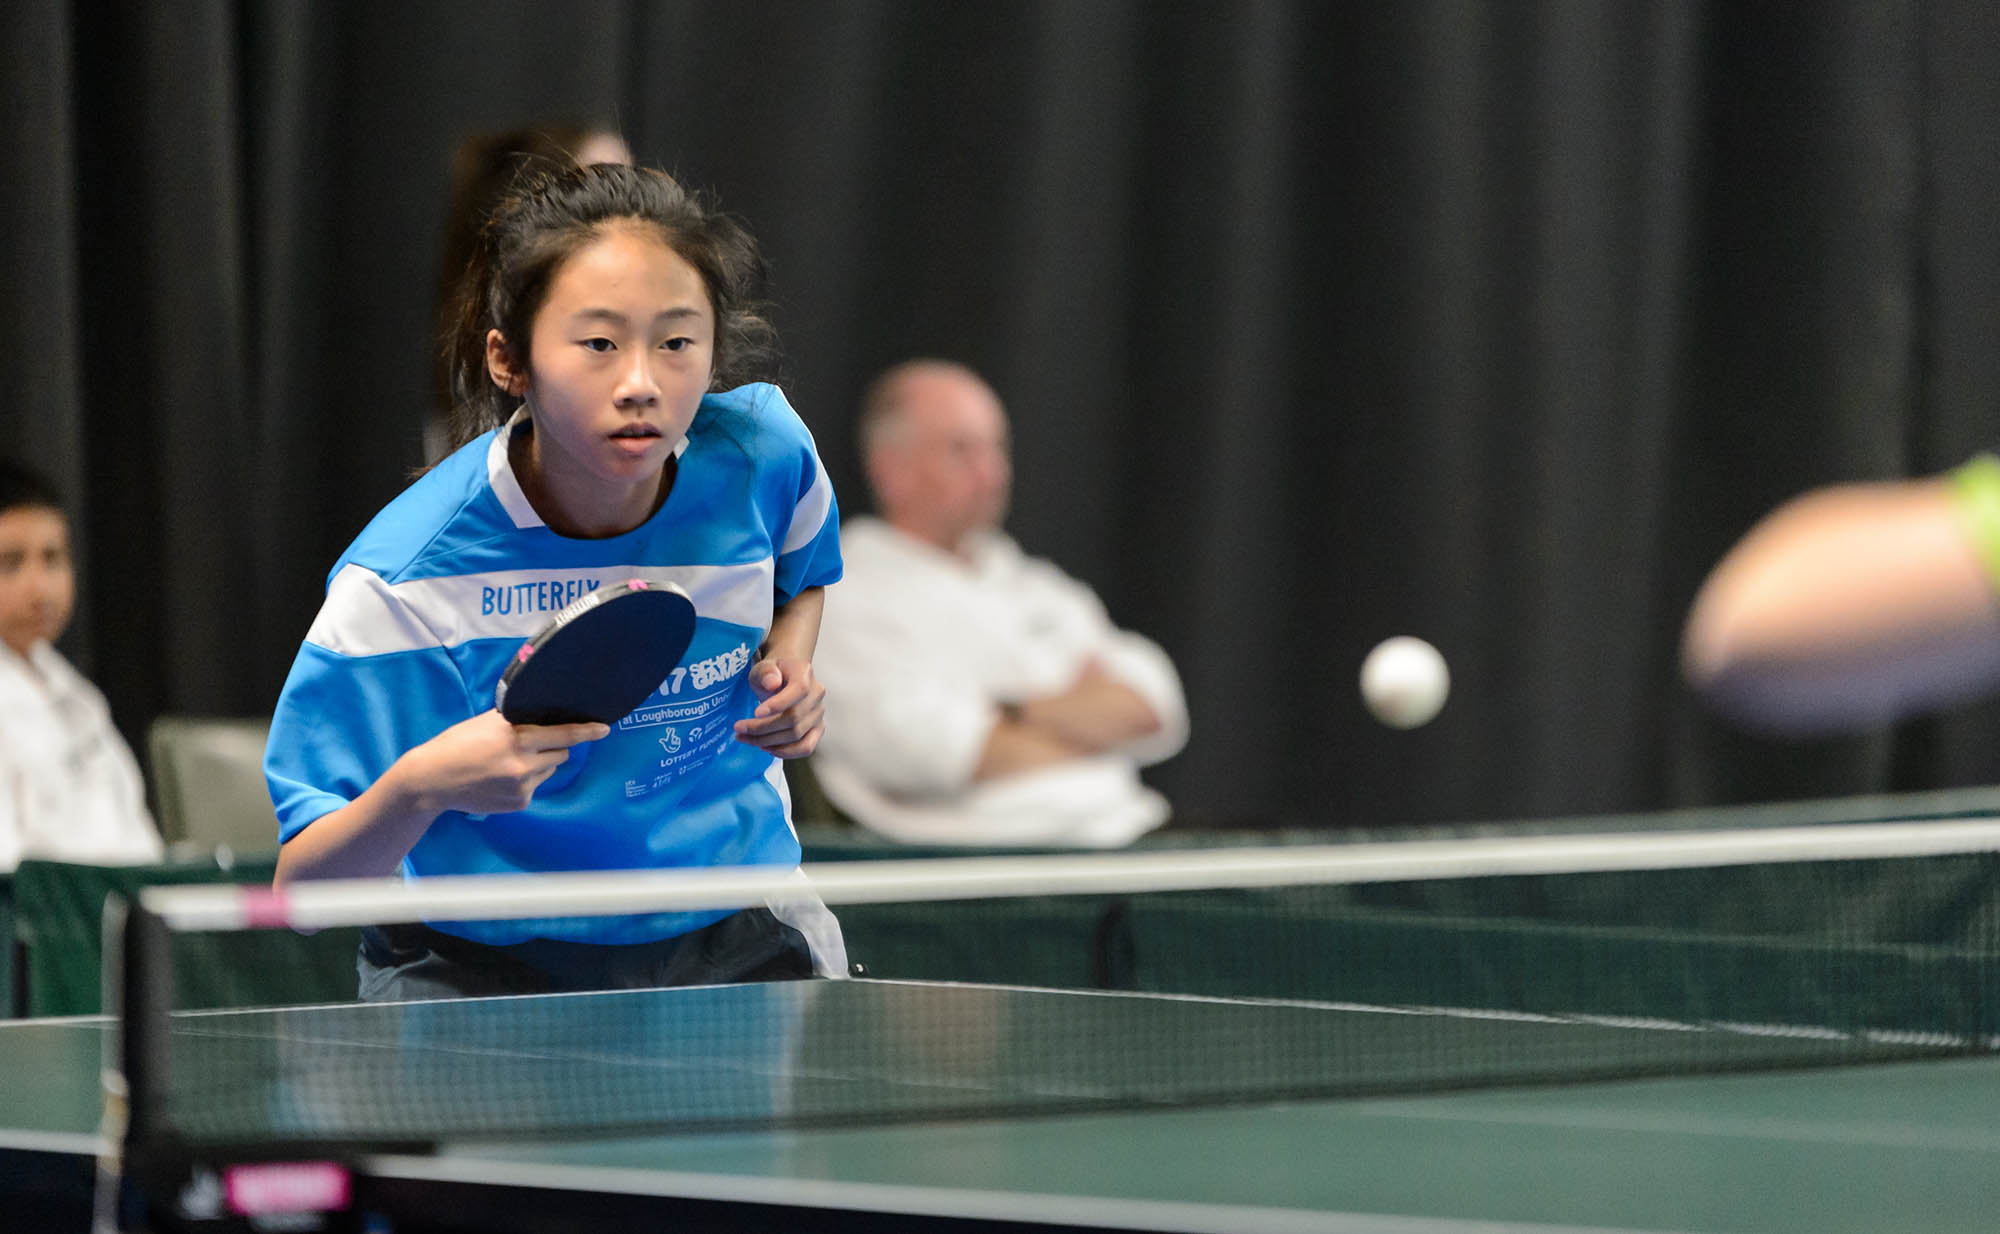 close-up of girl playing table tennis